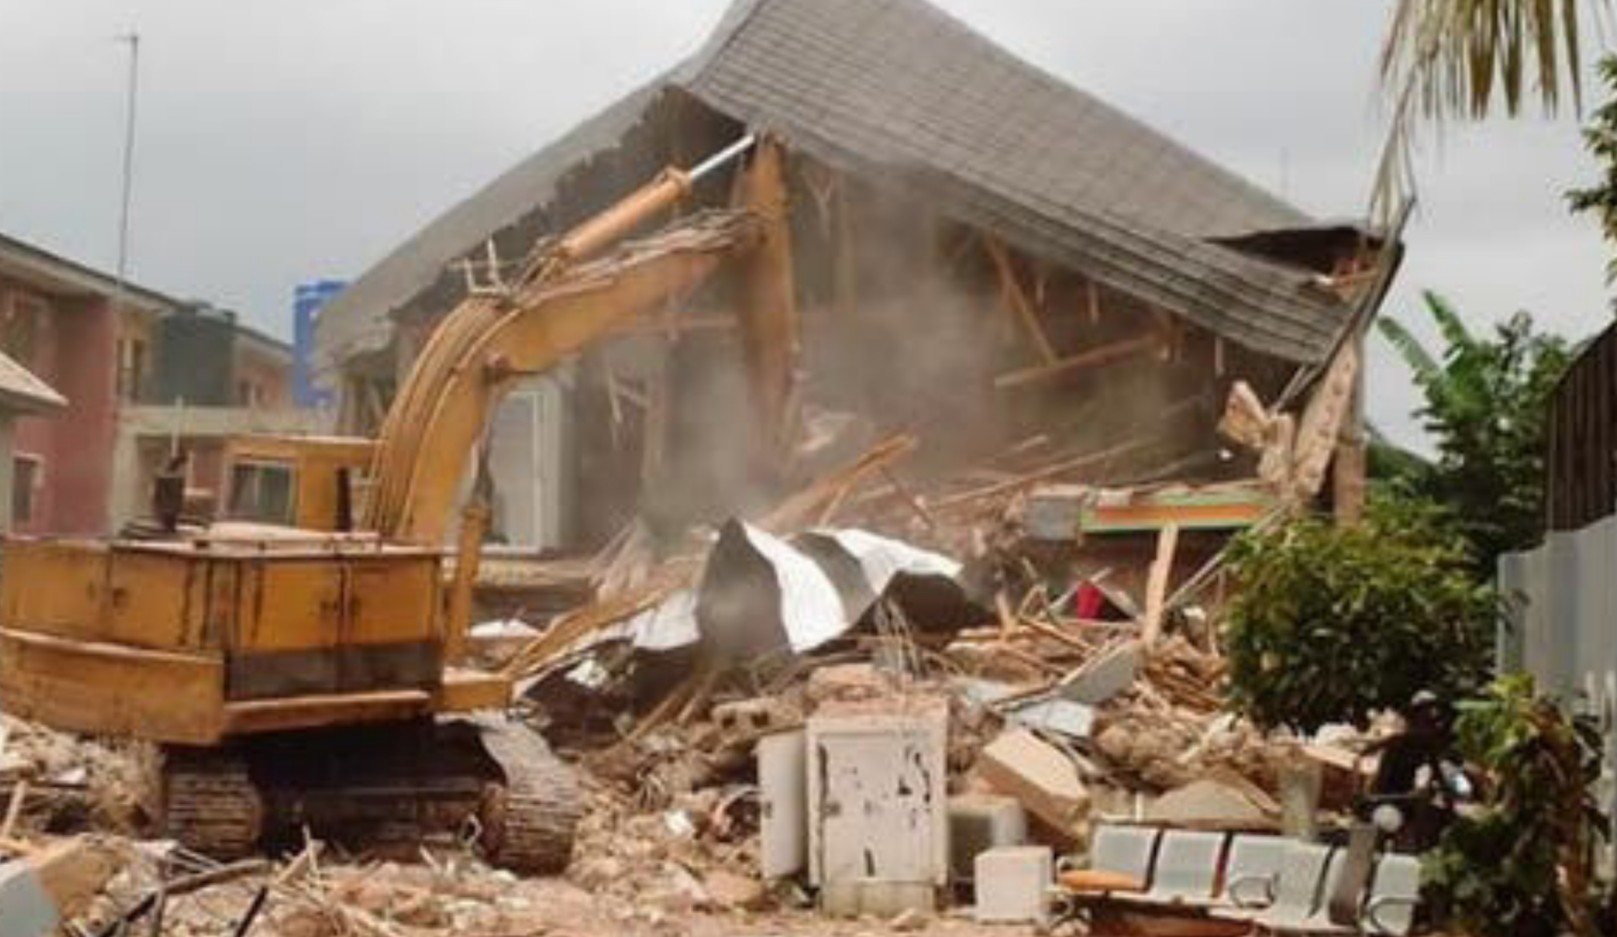 Enugu Govt demolishes house of man who pulled down Airport fence